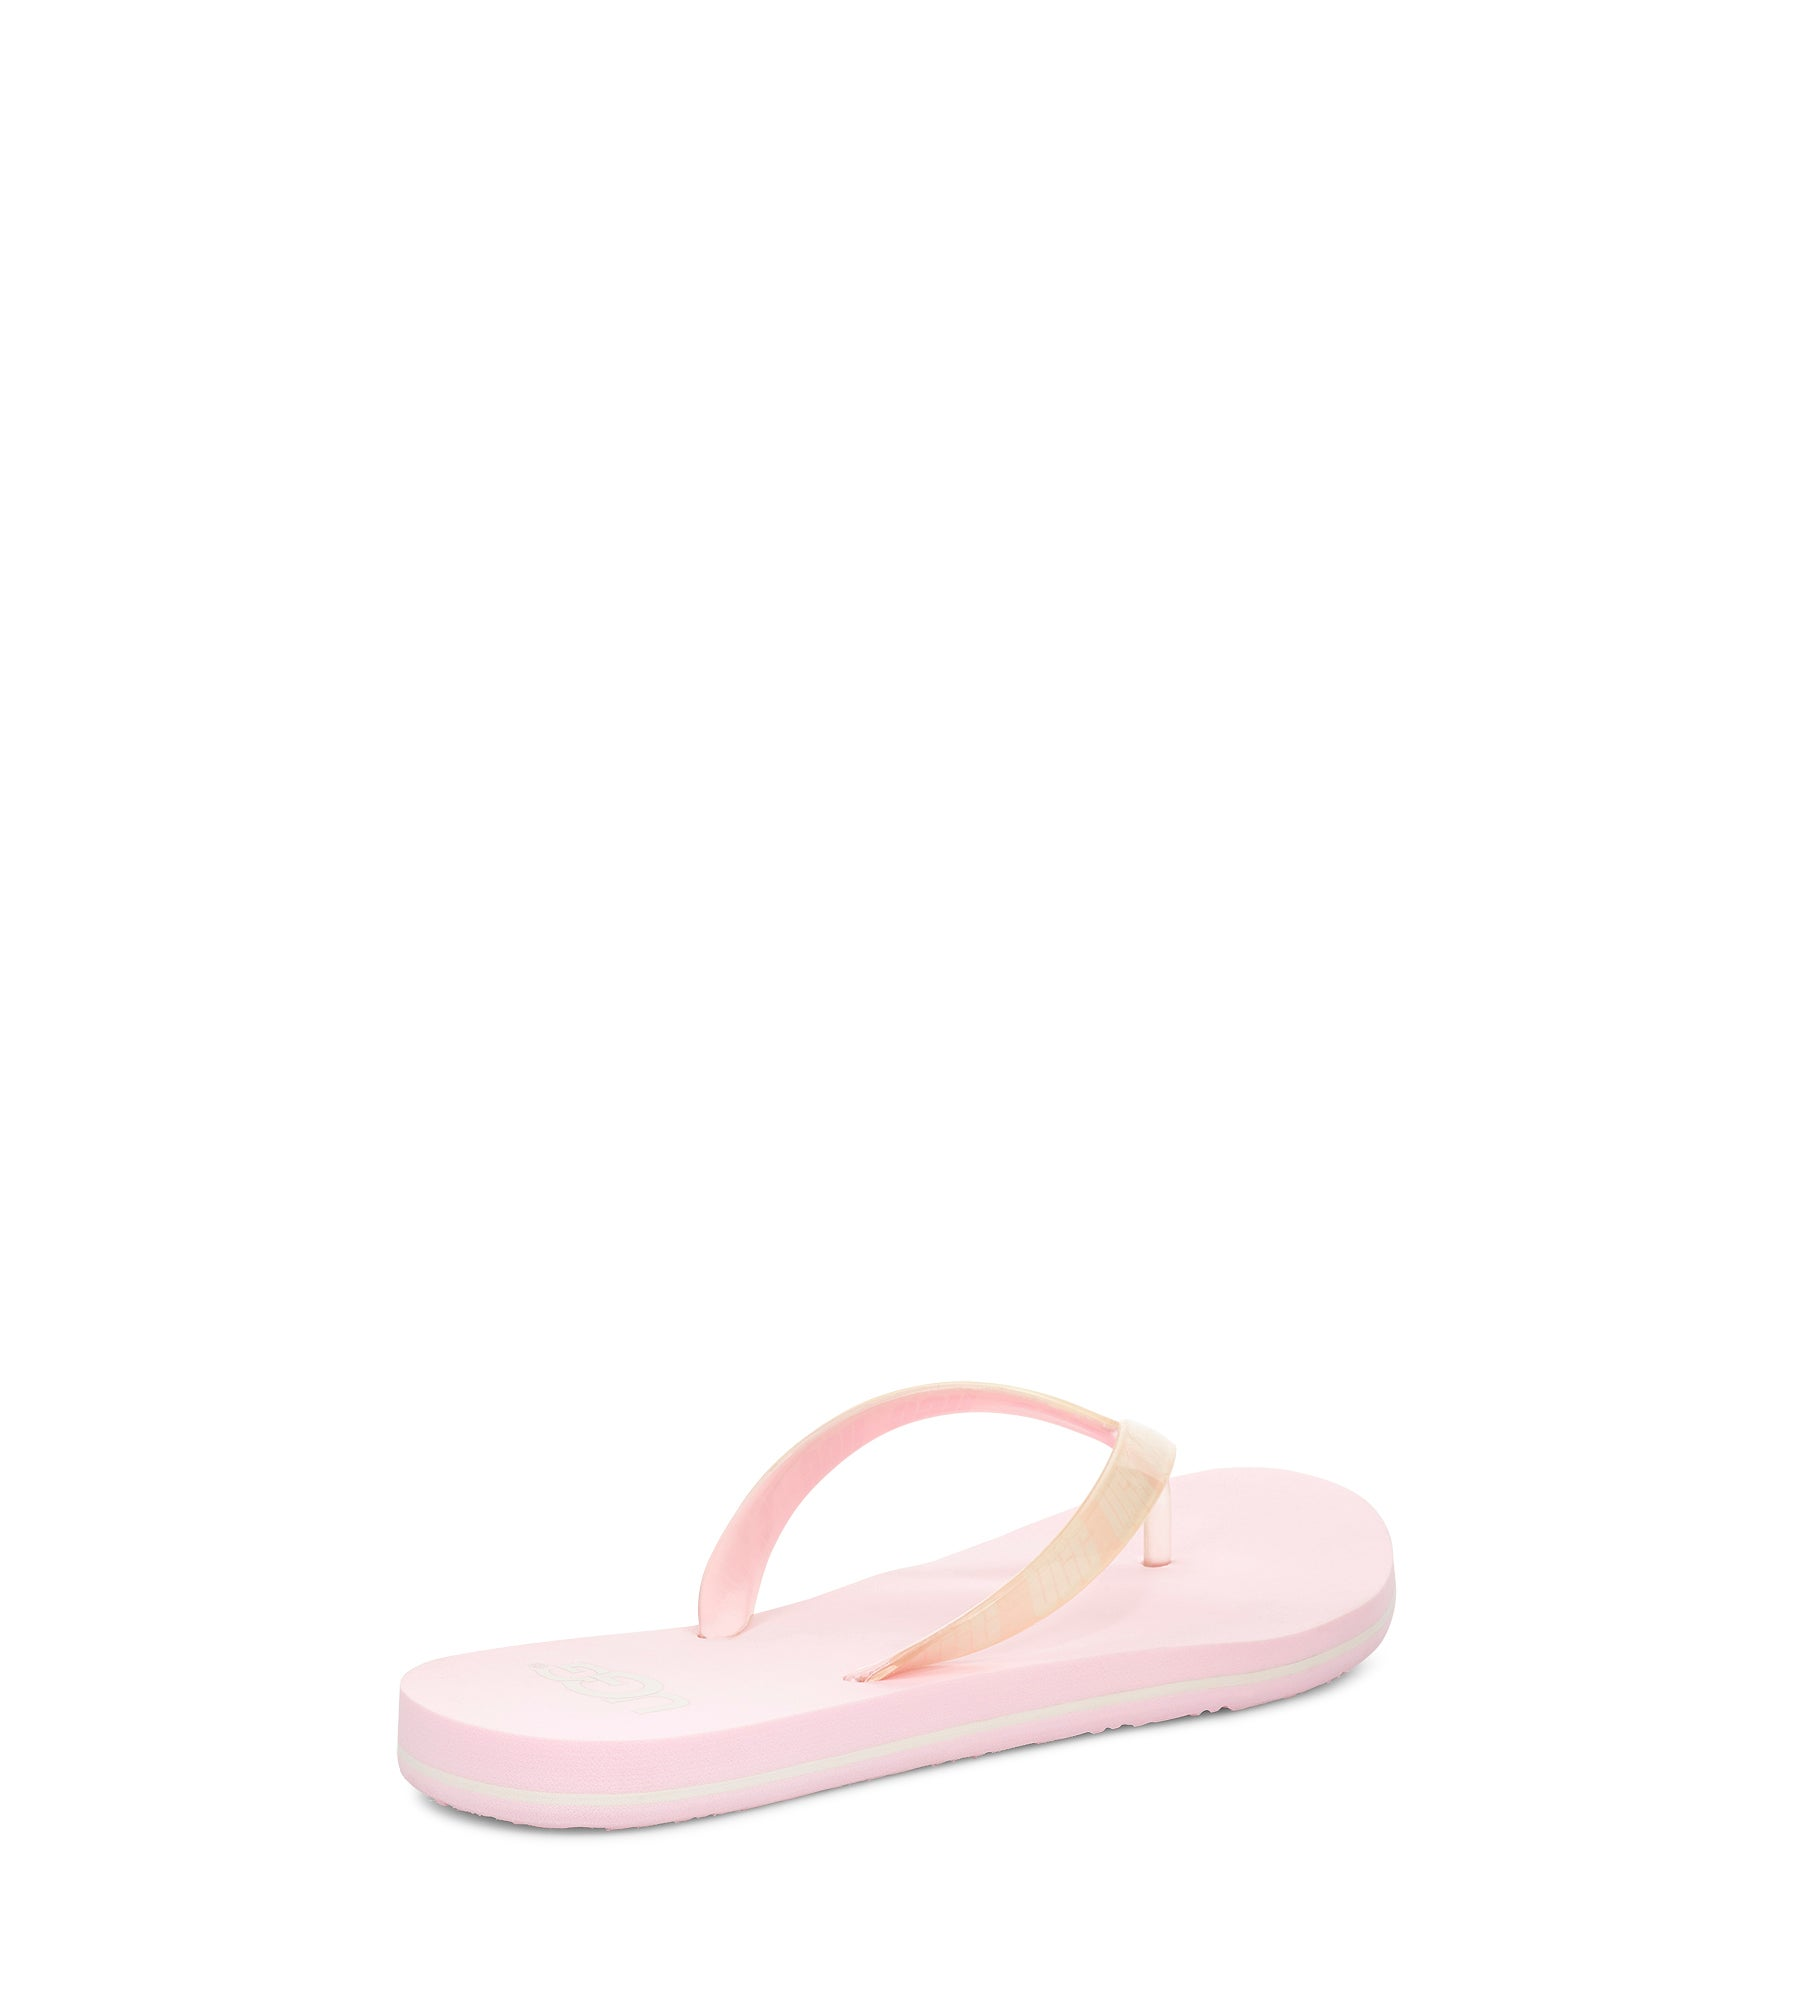 Women's SIMI GRAPHIC pink thong sandals